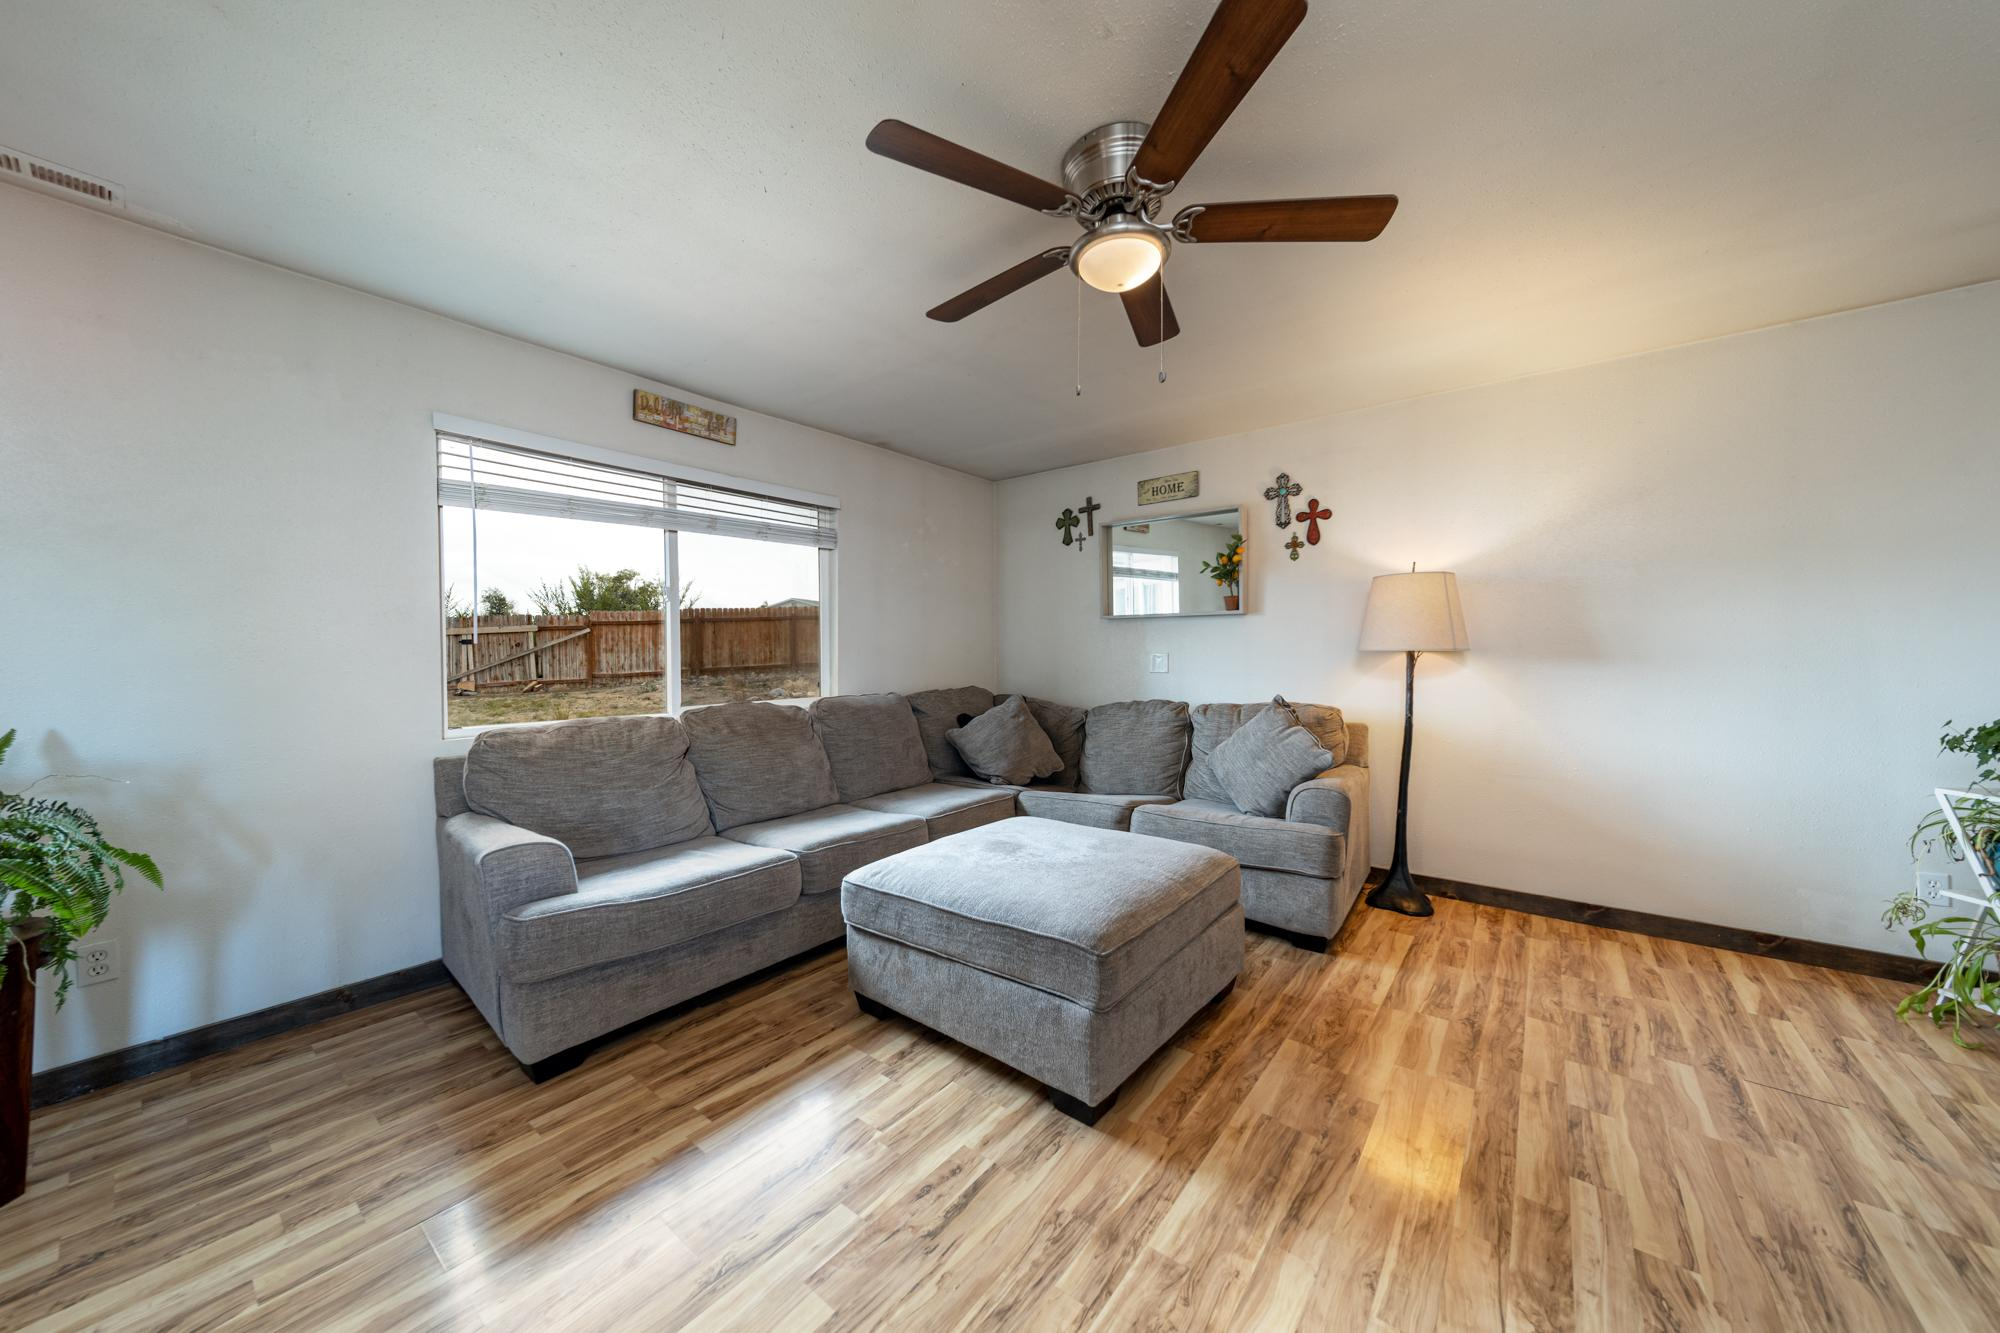 Living Room with Ceiling Fan - 1117 Centennial Dr Montrose, CO 81401 - Atha Team Real Estate